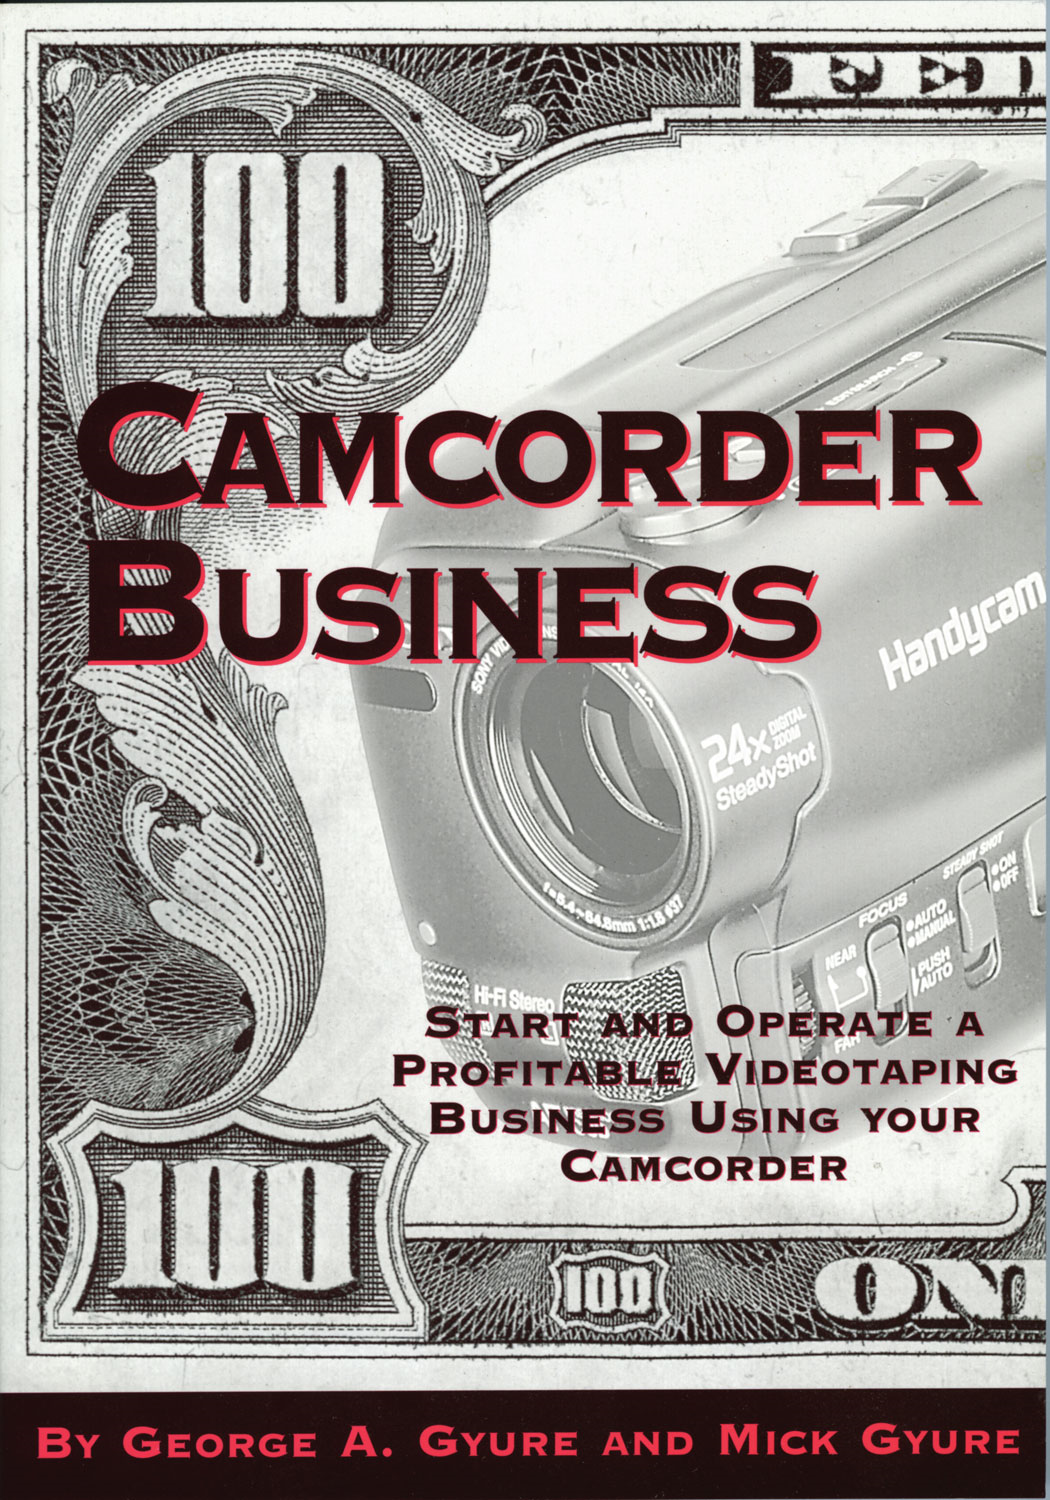 Camcorder Business